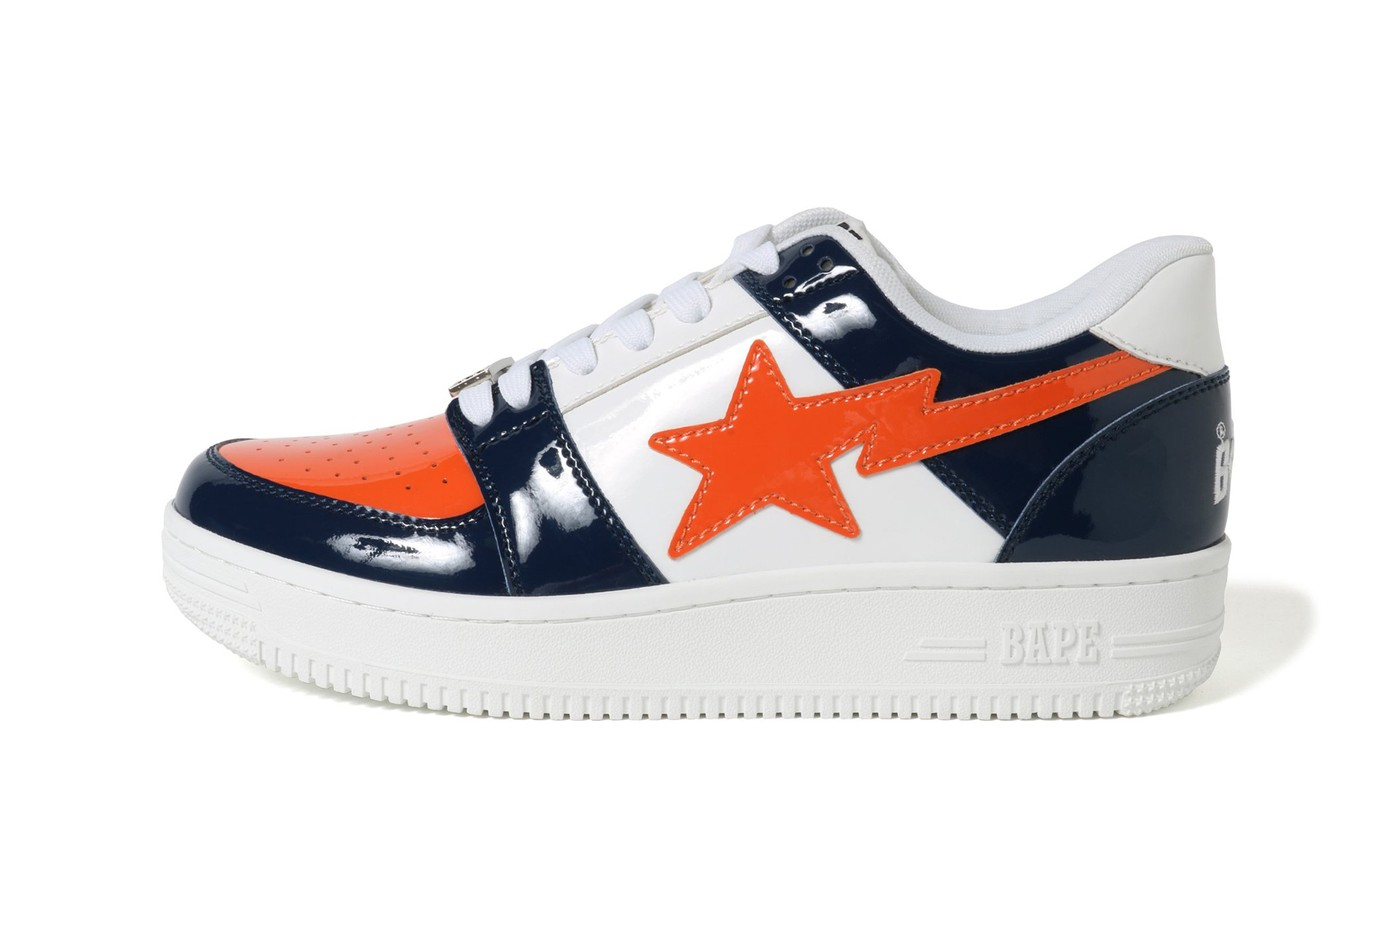 57e82ec6ce835 The patent leather color options in this roundup include a standout  orange/navy combo that might remind you of NYC sports, a red, green and  white option ...